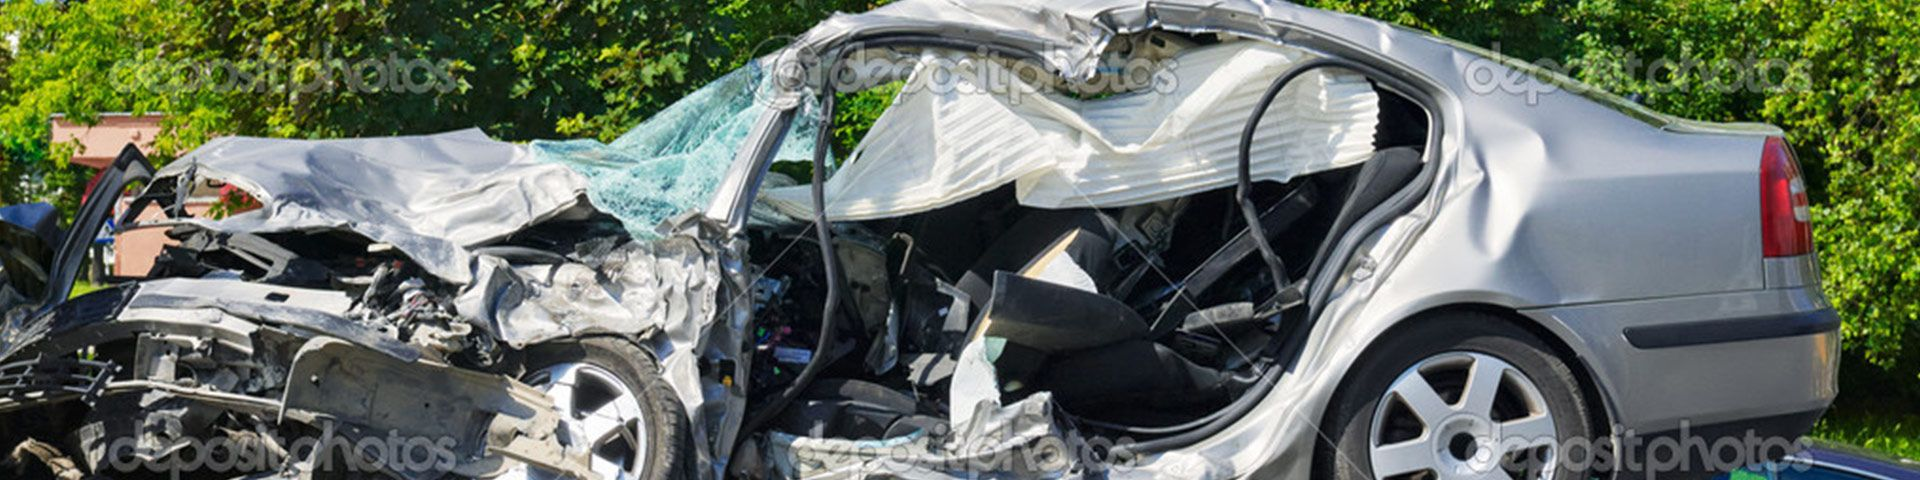 Dixie Auto Salvage >> If You Are Looking For A Quality Auto Parts Stores In